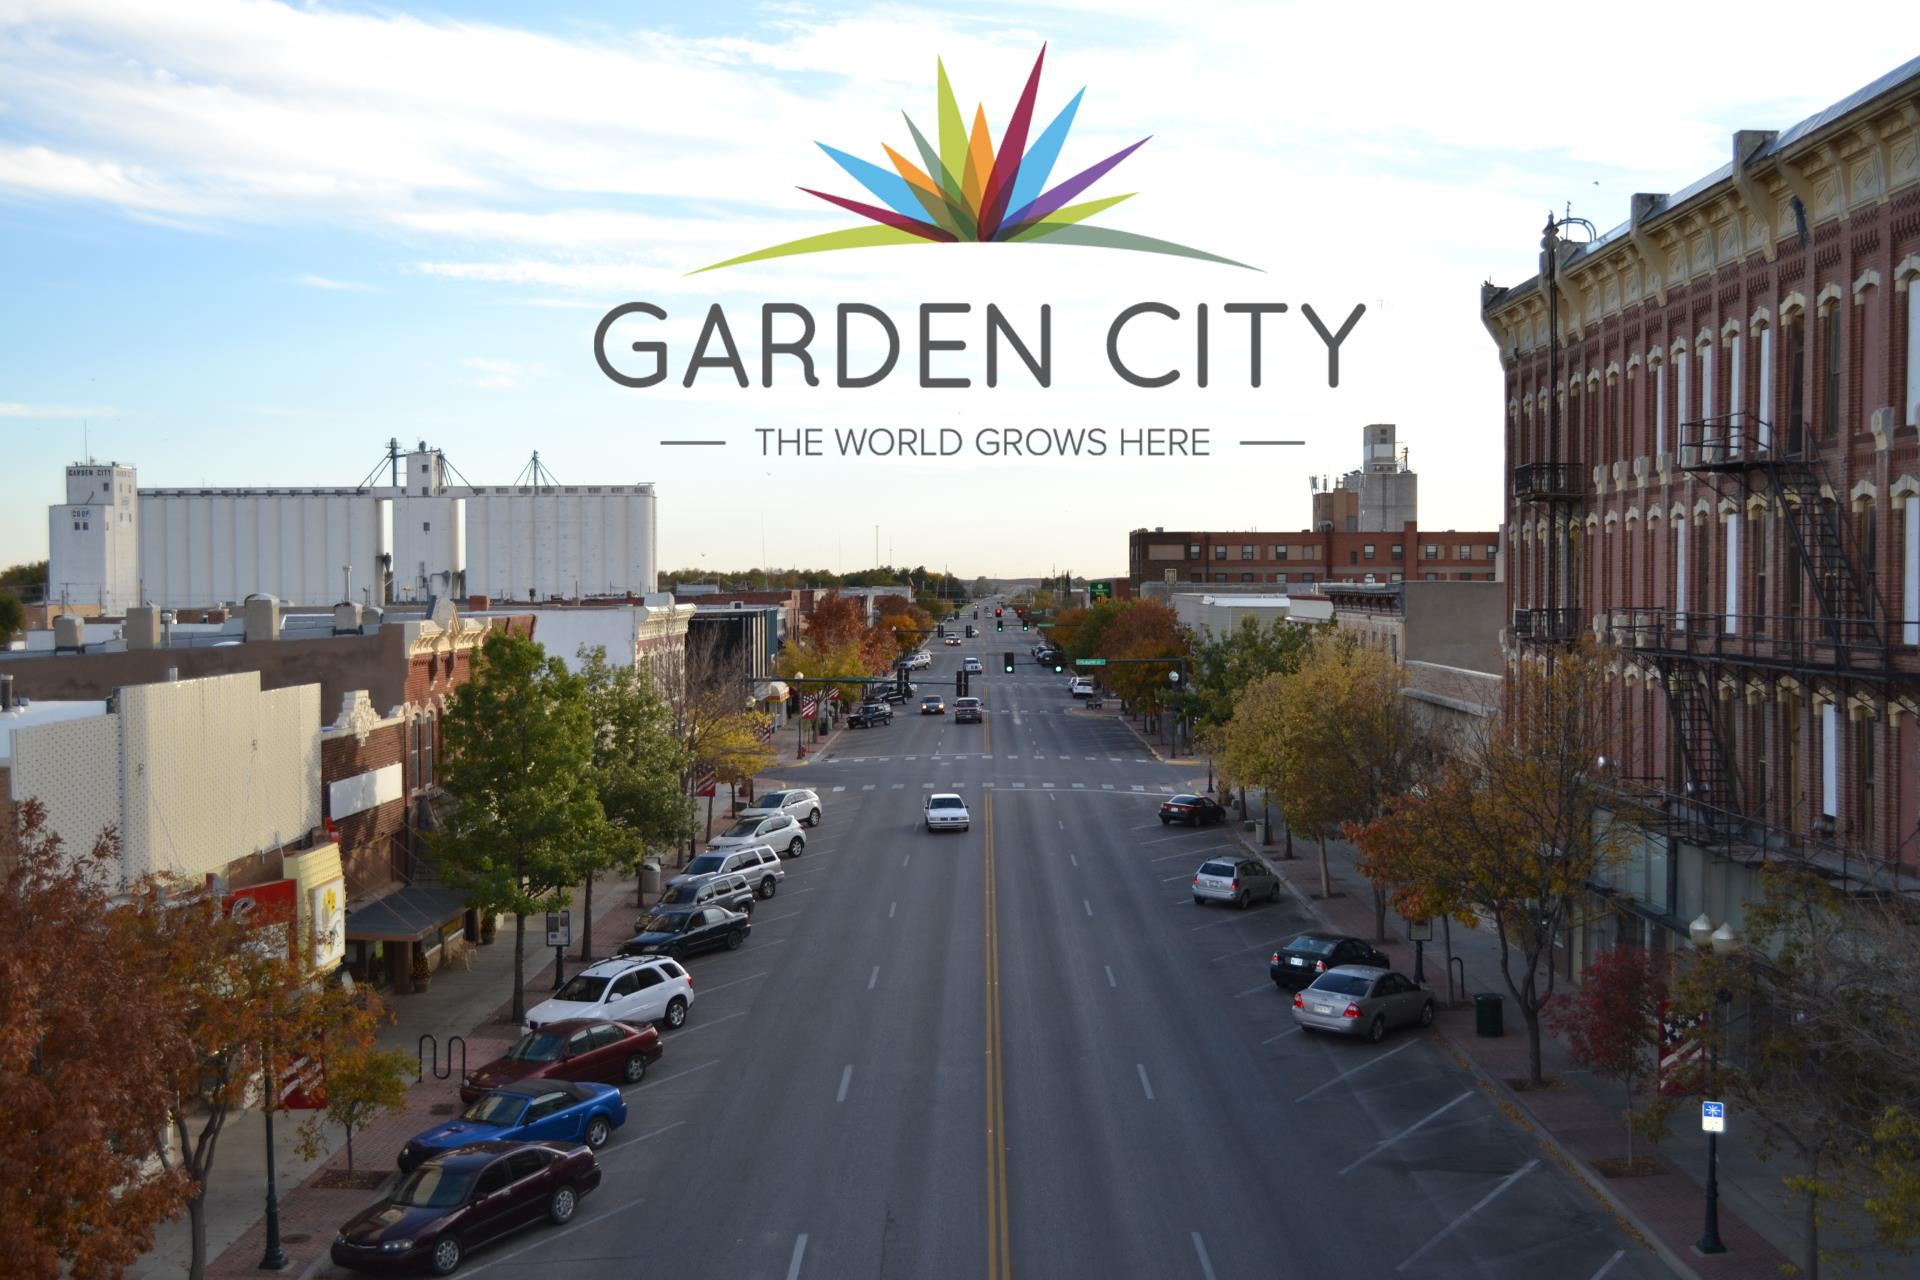 Downtown GC with logo